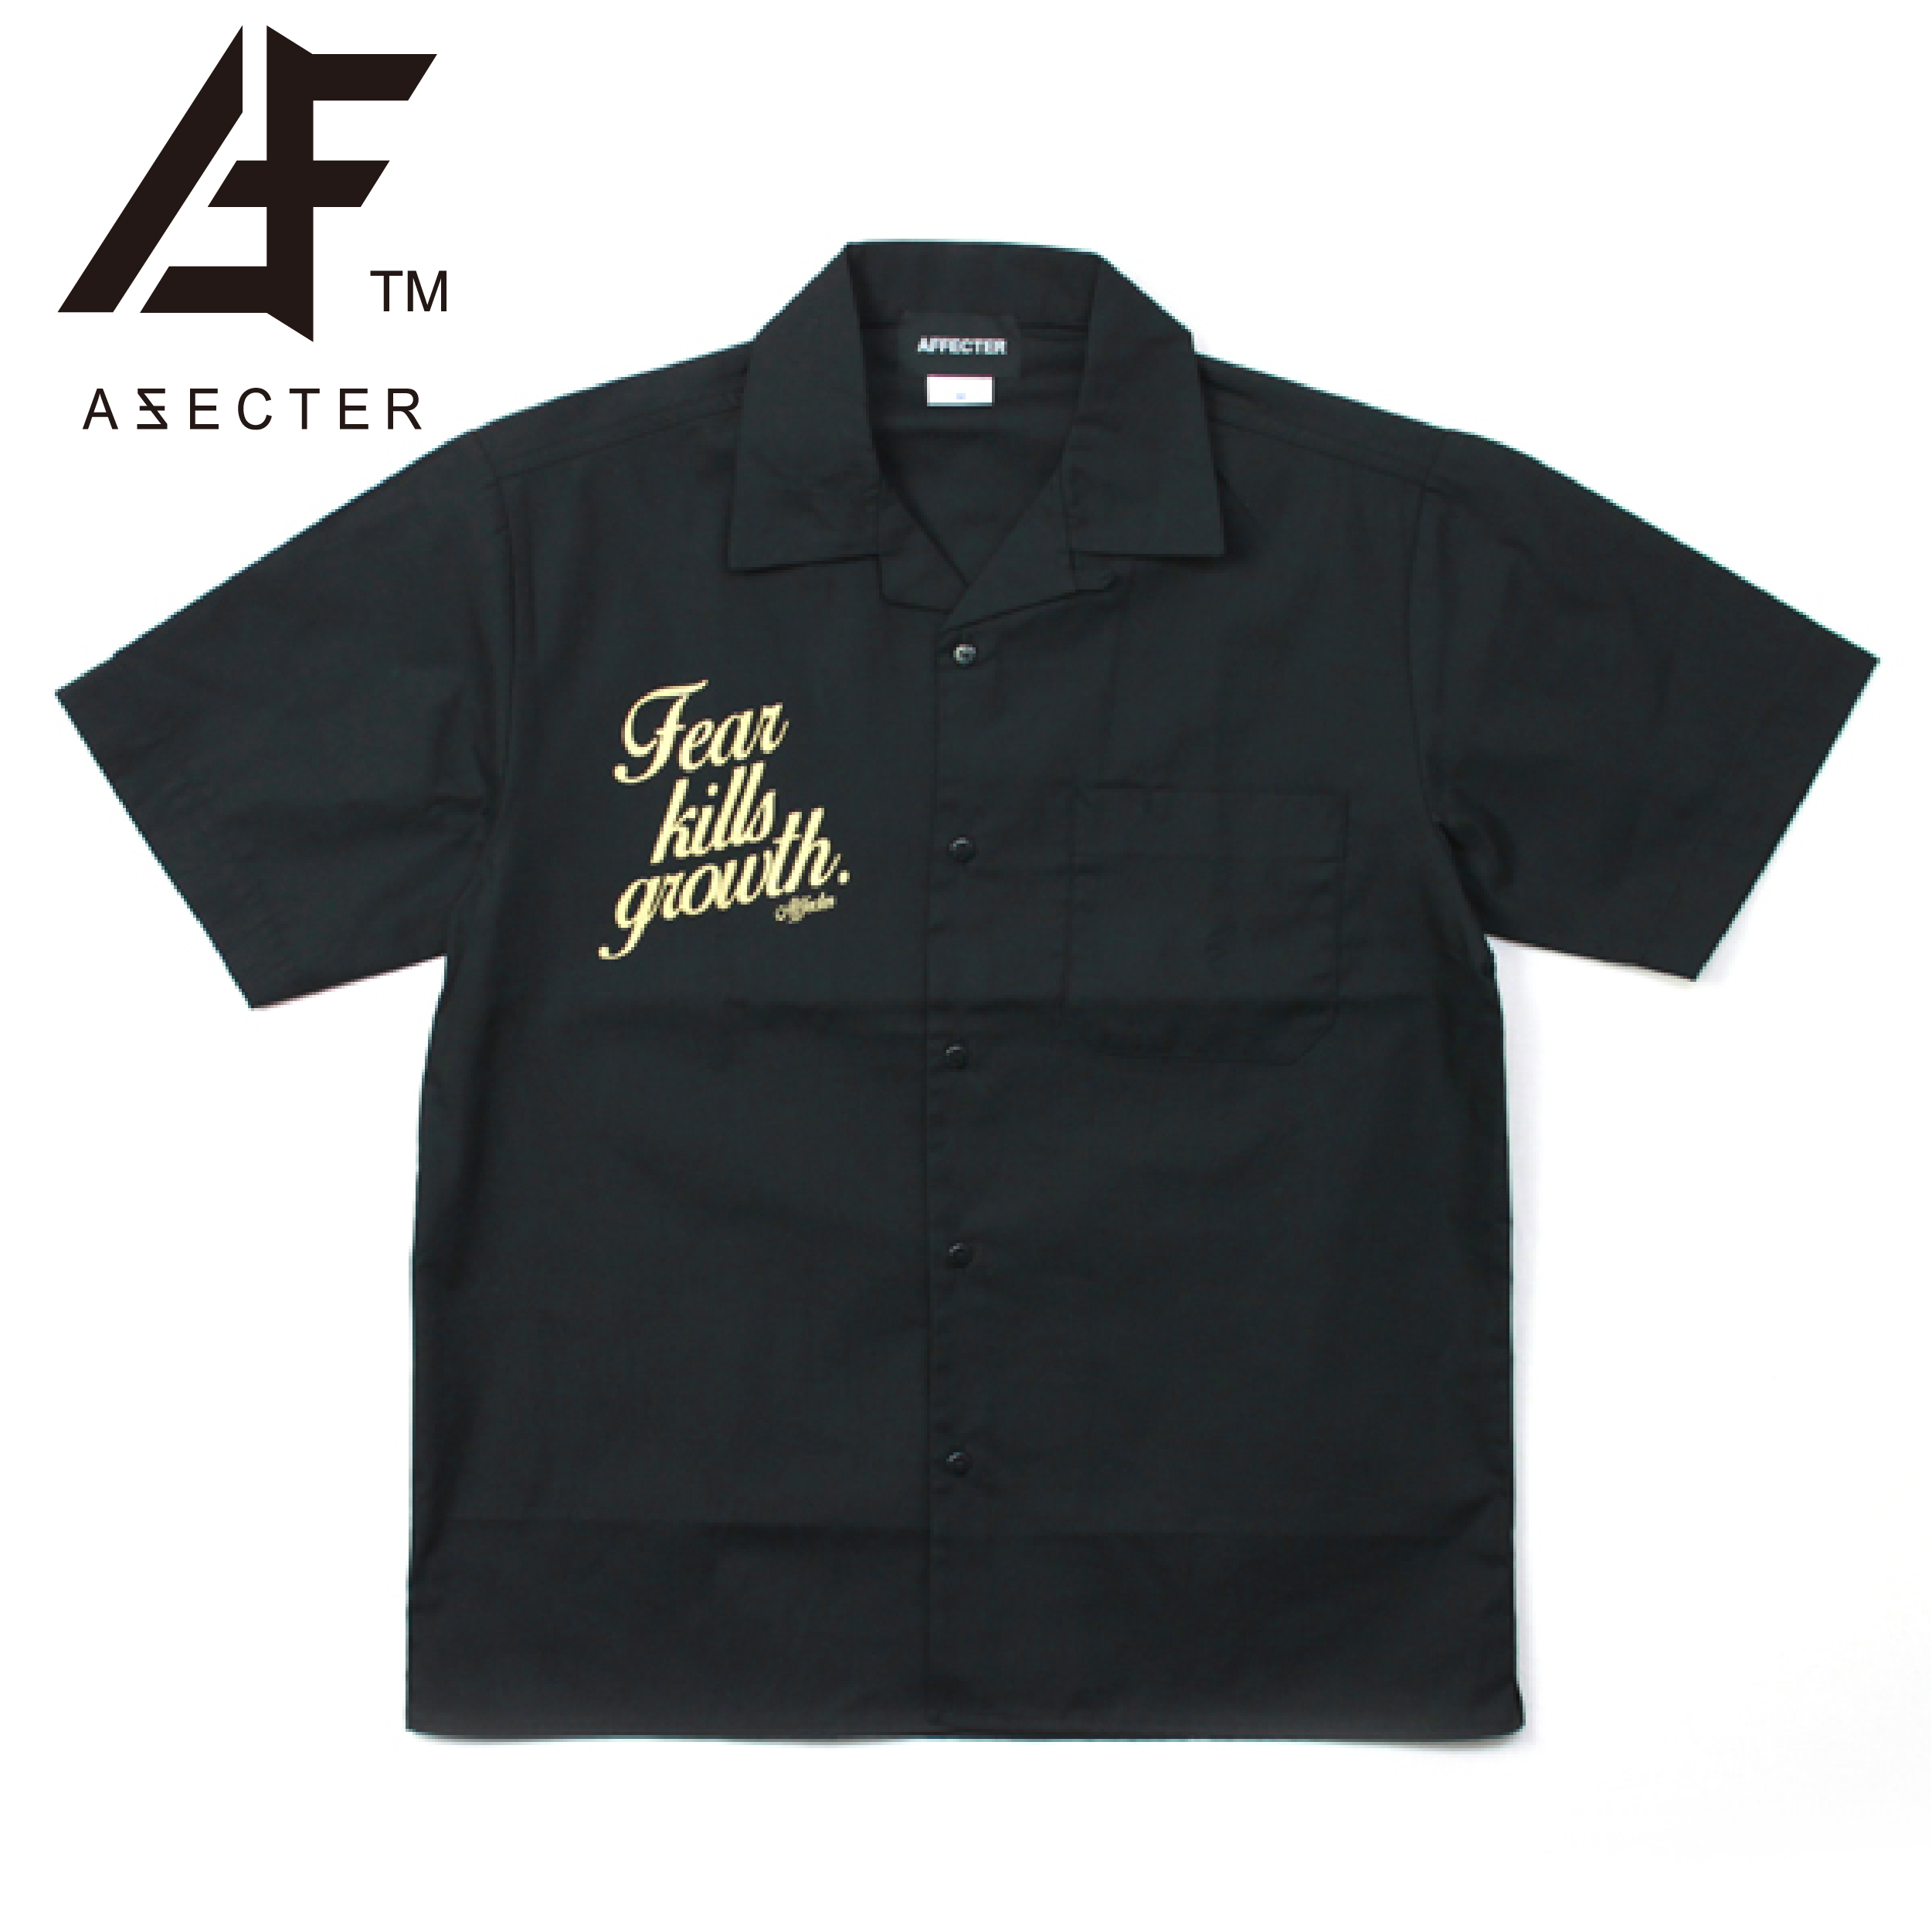 AFFECTER (アフェクター) | KILL GLOWTH SHIRTS (Black)